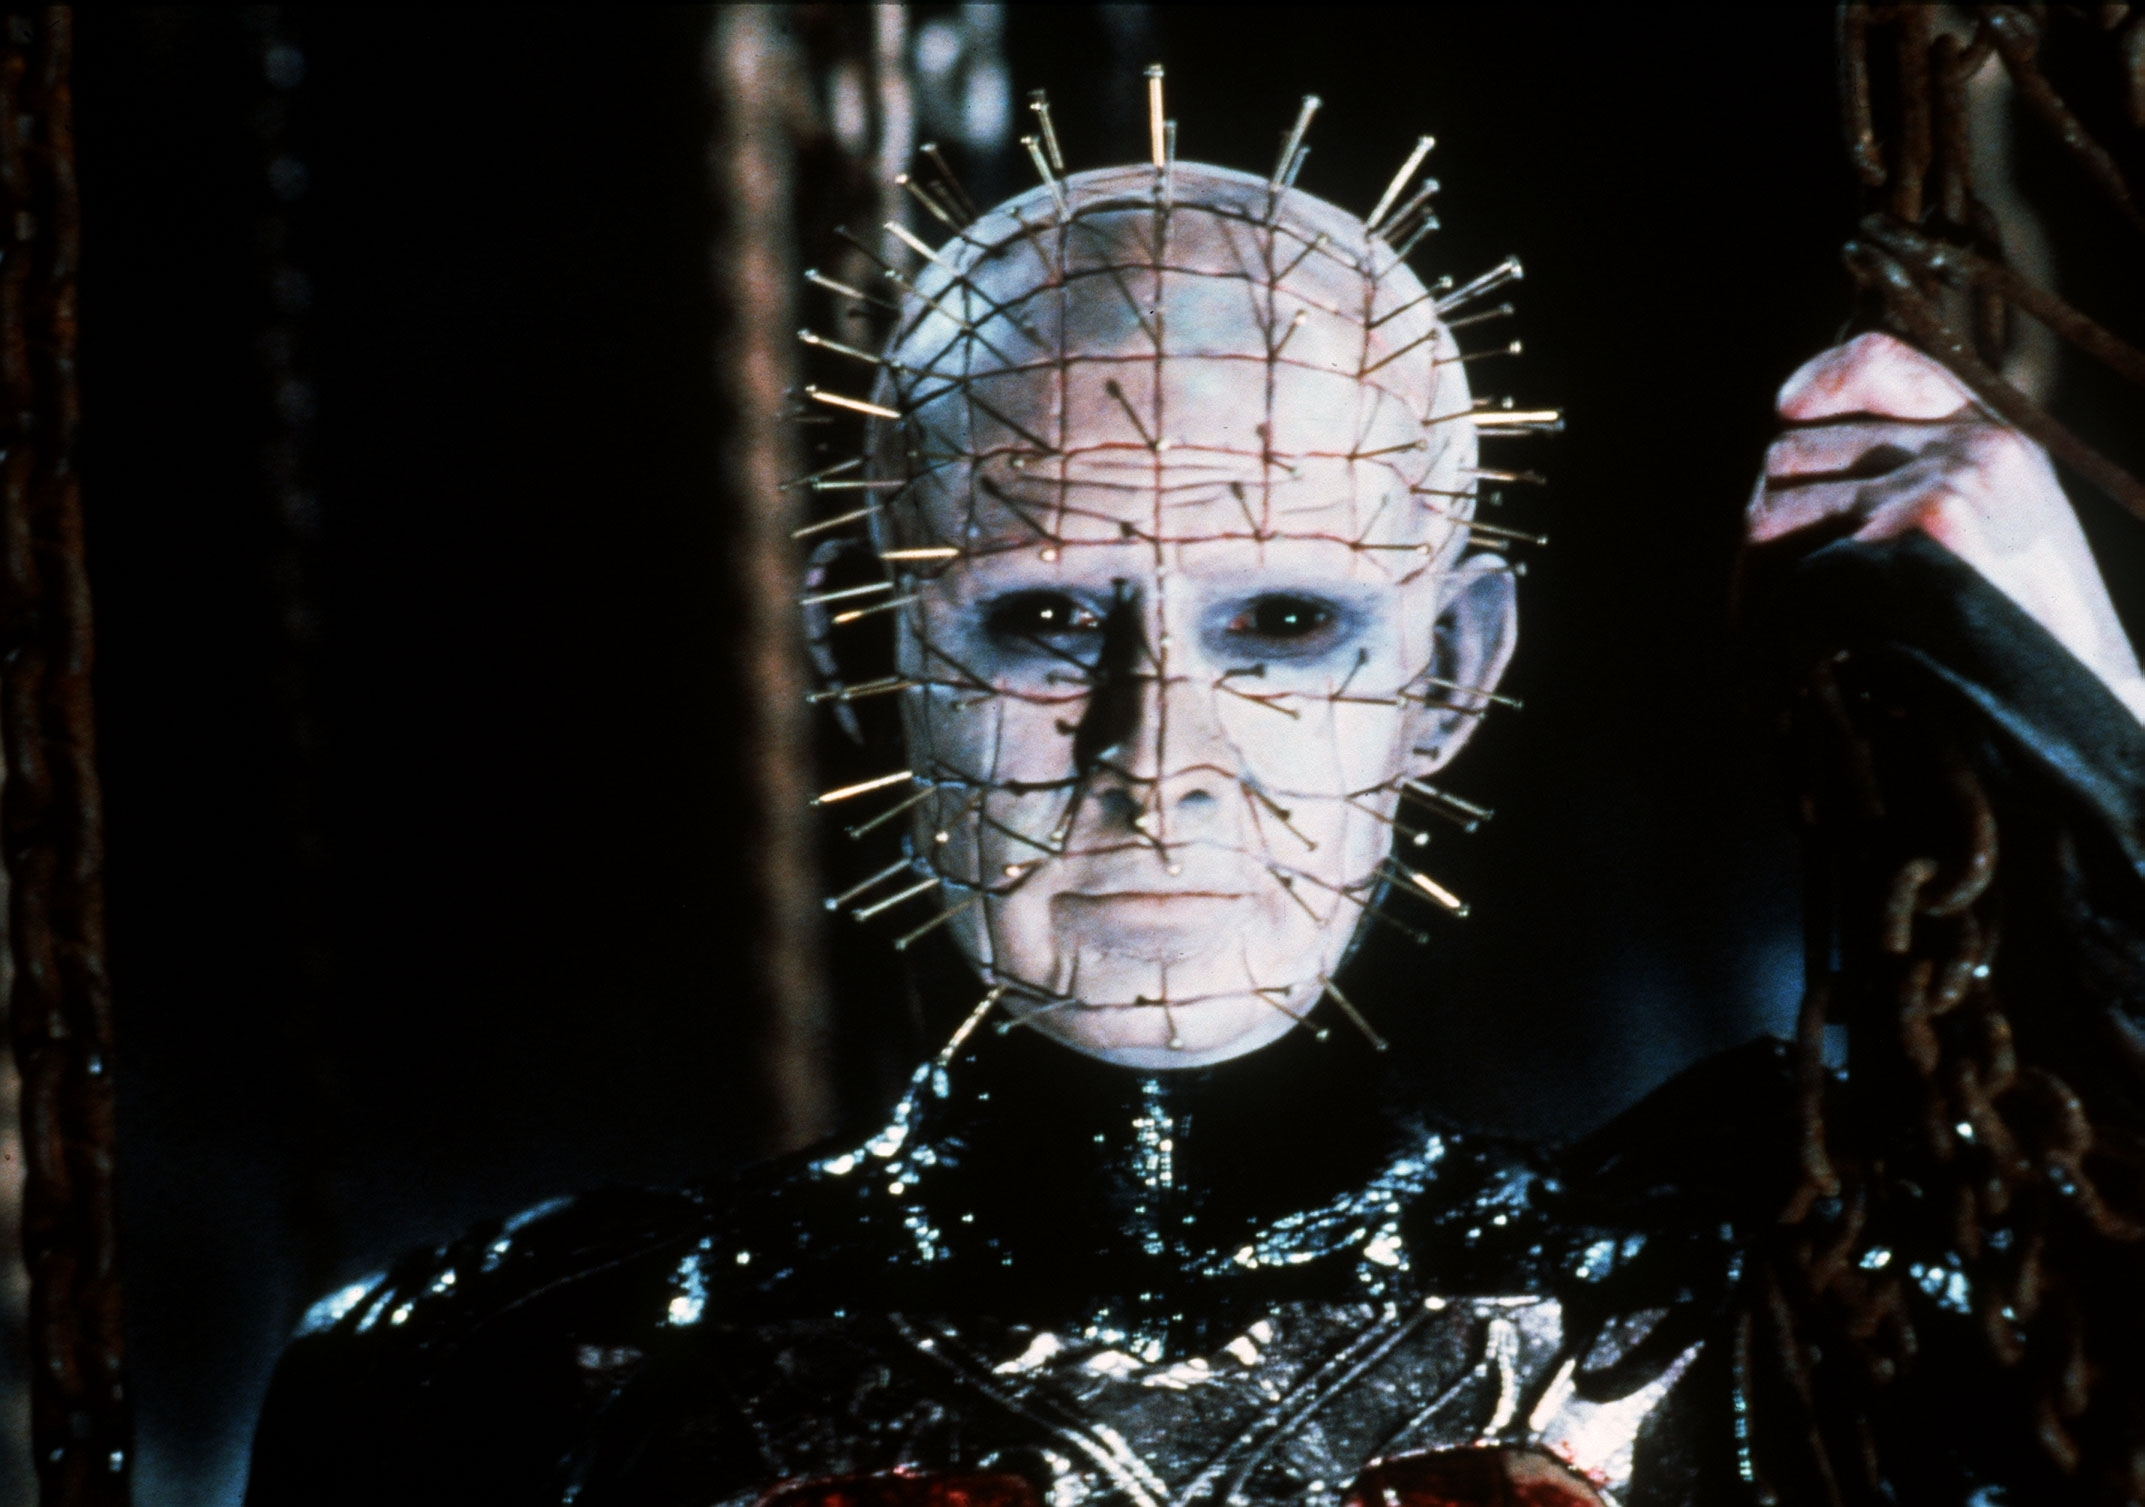 Hellraiser Pinhead These 10 Frightening Facts About Hellraiser Will Tear Your Soul Apart